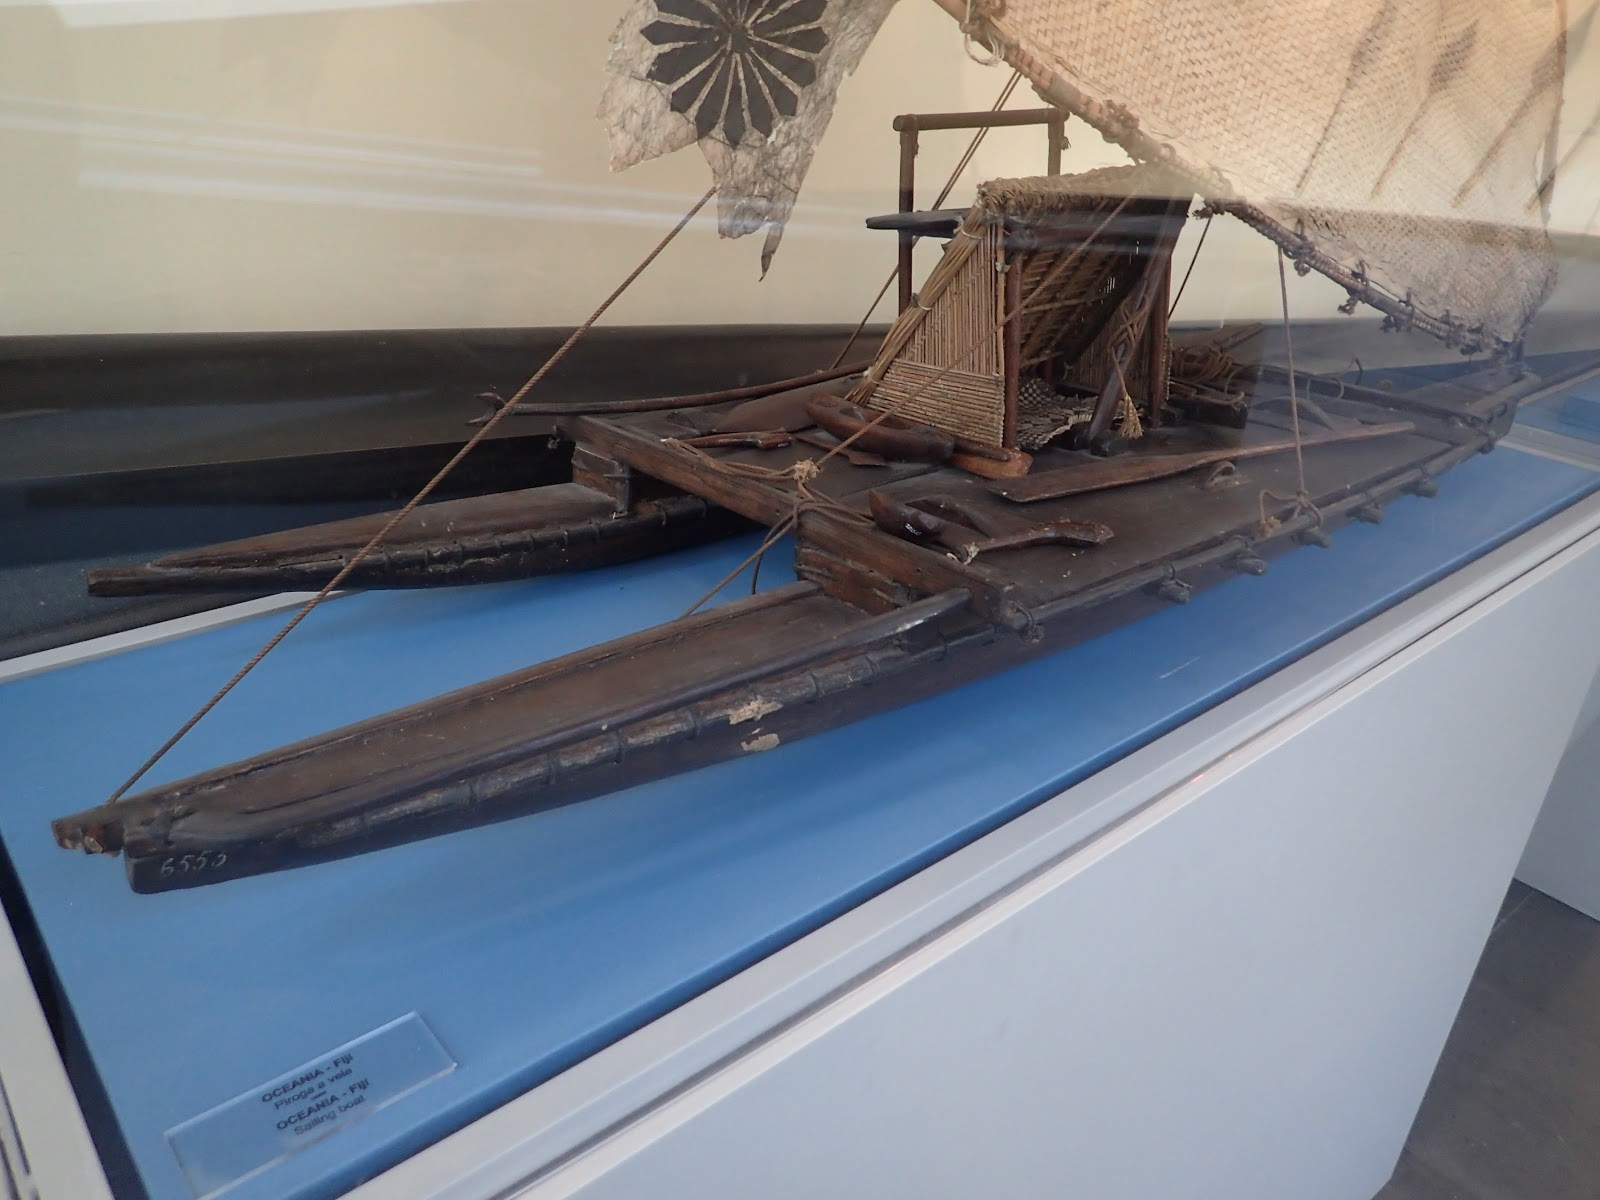 Model of a Fijian outrigger sailing canoe displayed at an exhibition by the Vatican Museums in the Vatican City, December 2016.